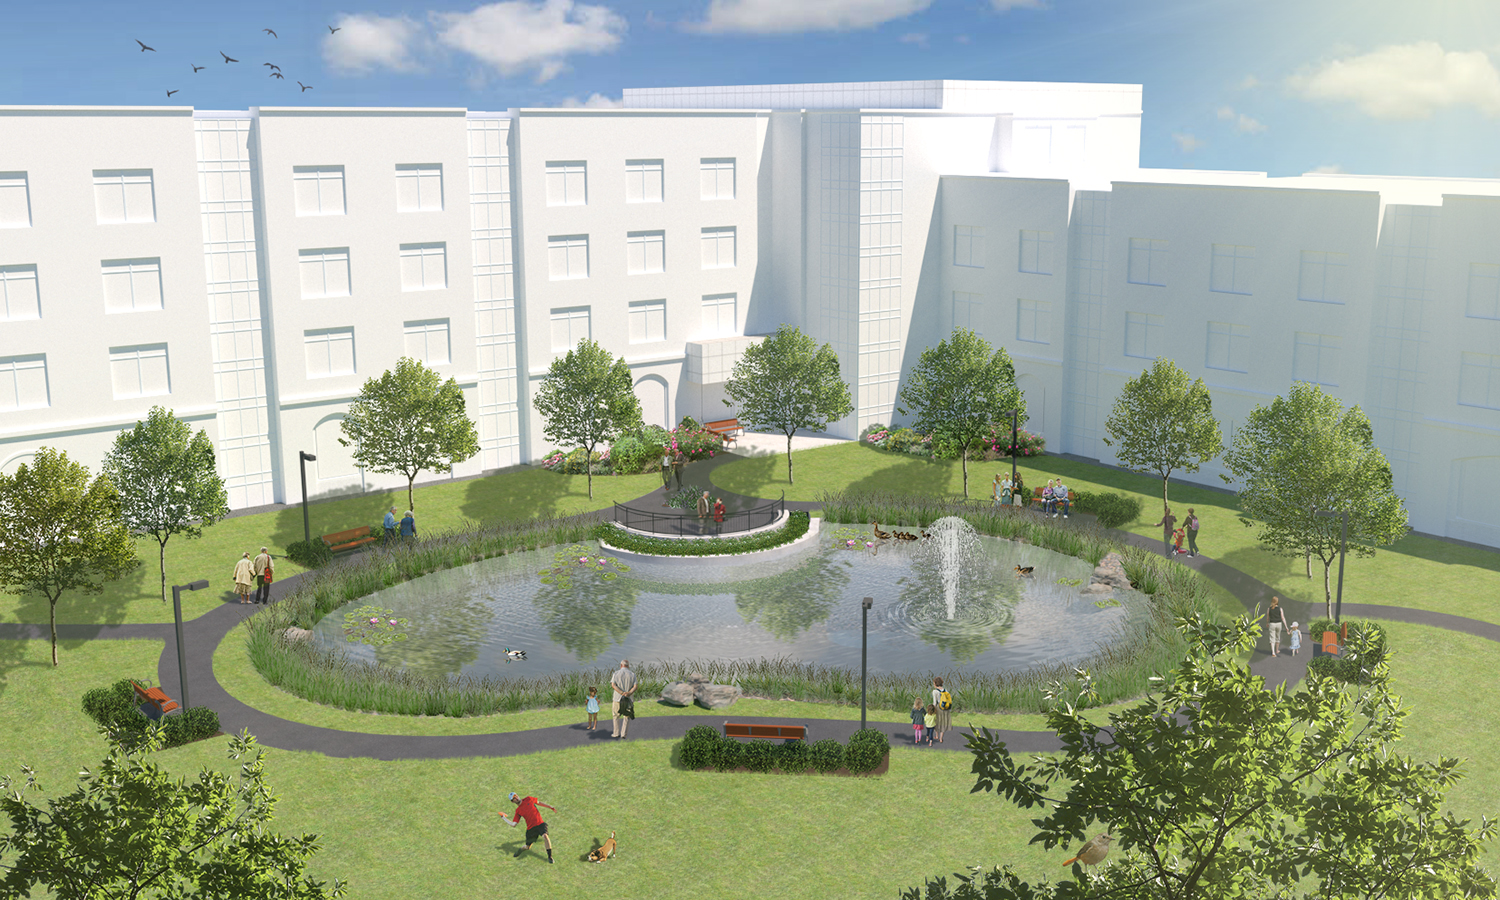 02-28-19 /  Design of a water feature at a proposed long term care facility currently under construction in St. John's.